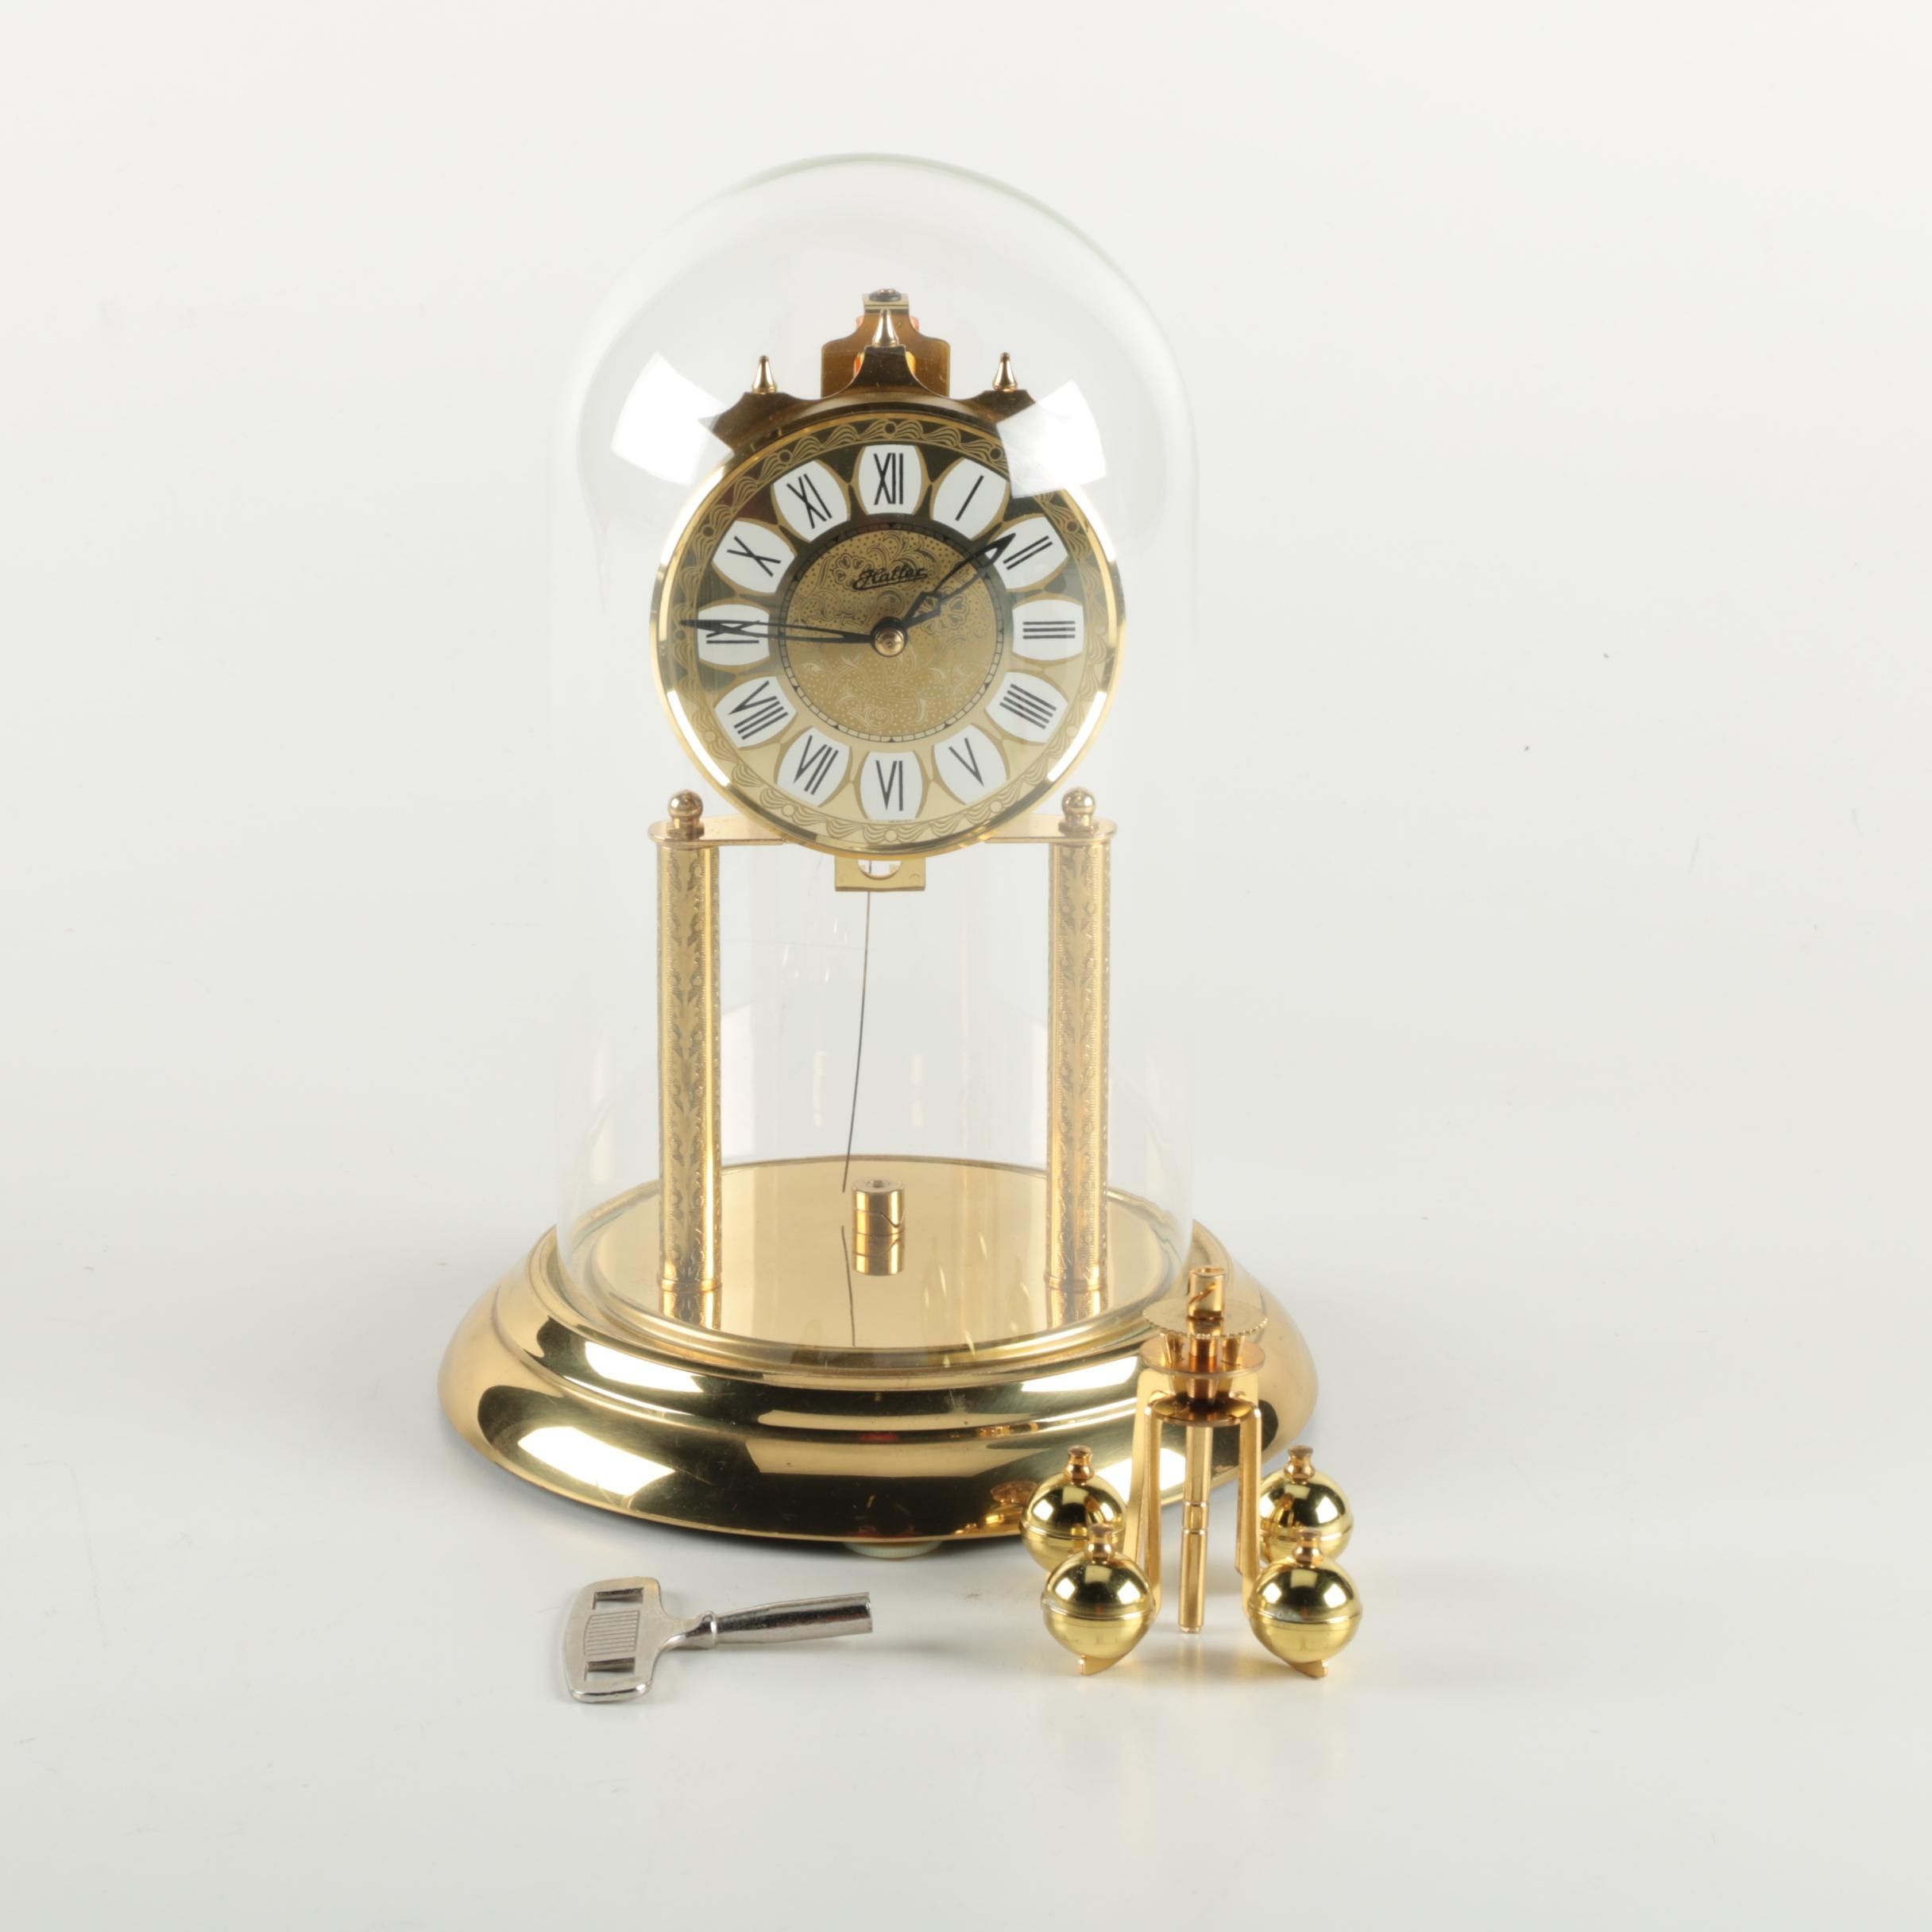 Haller German Brass Anniversary Clock with Glass Dome